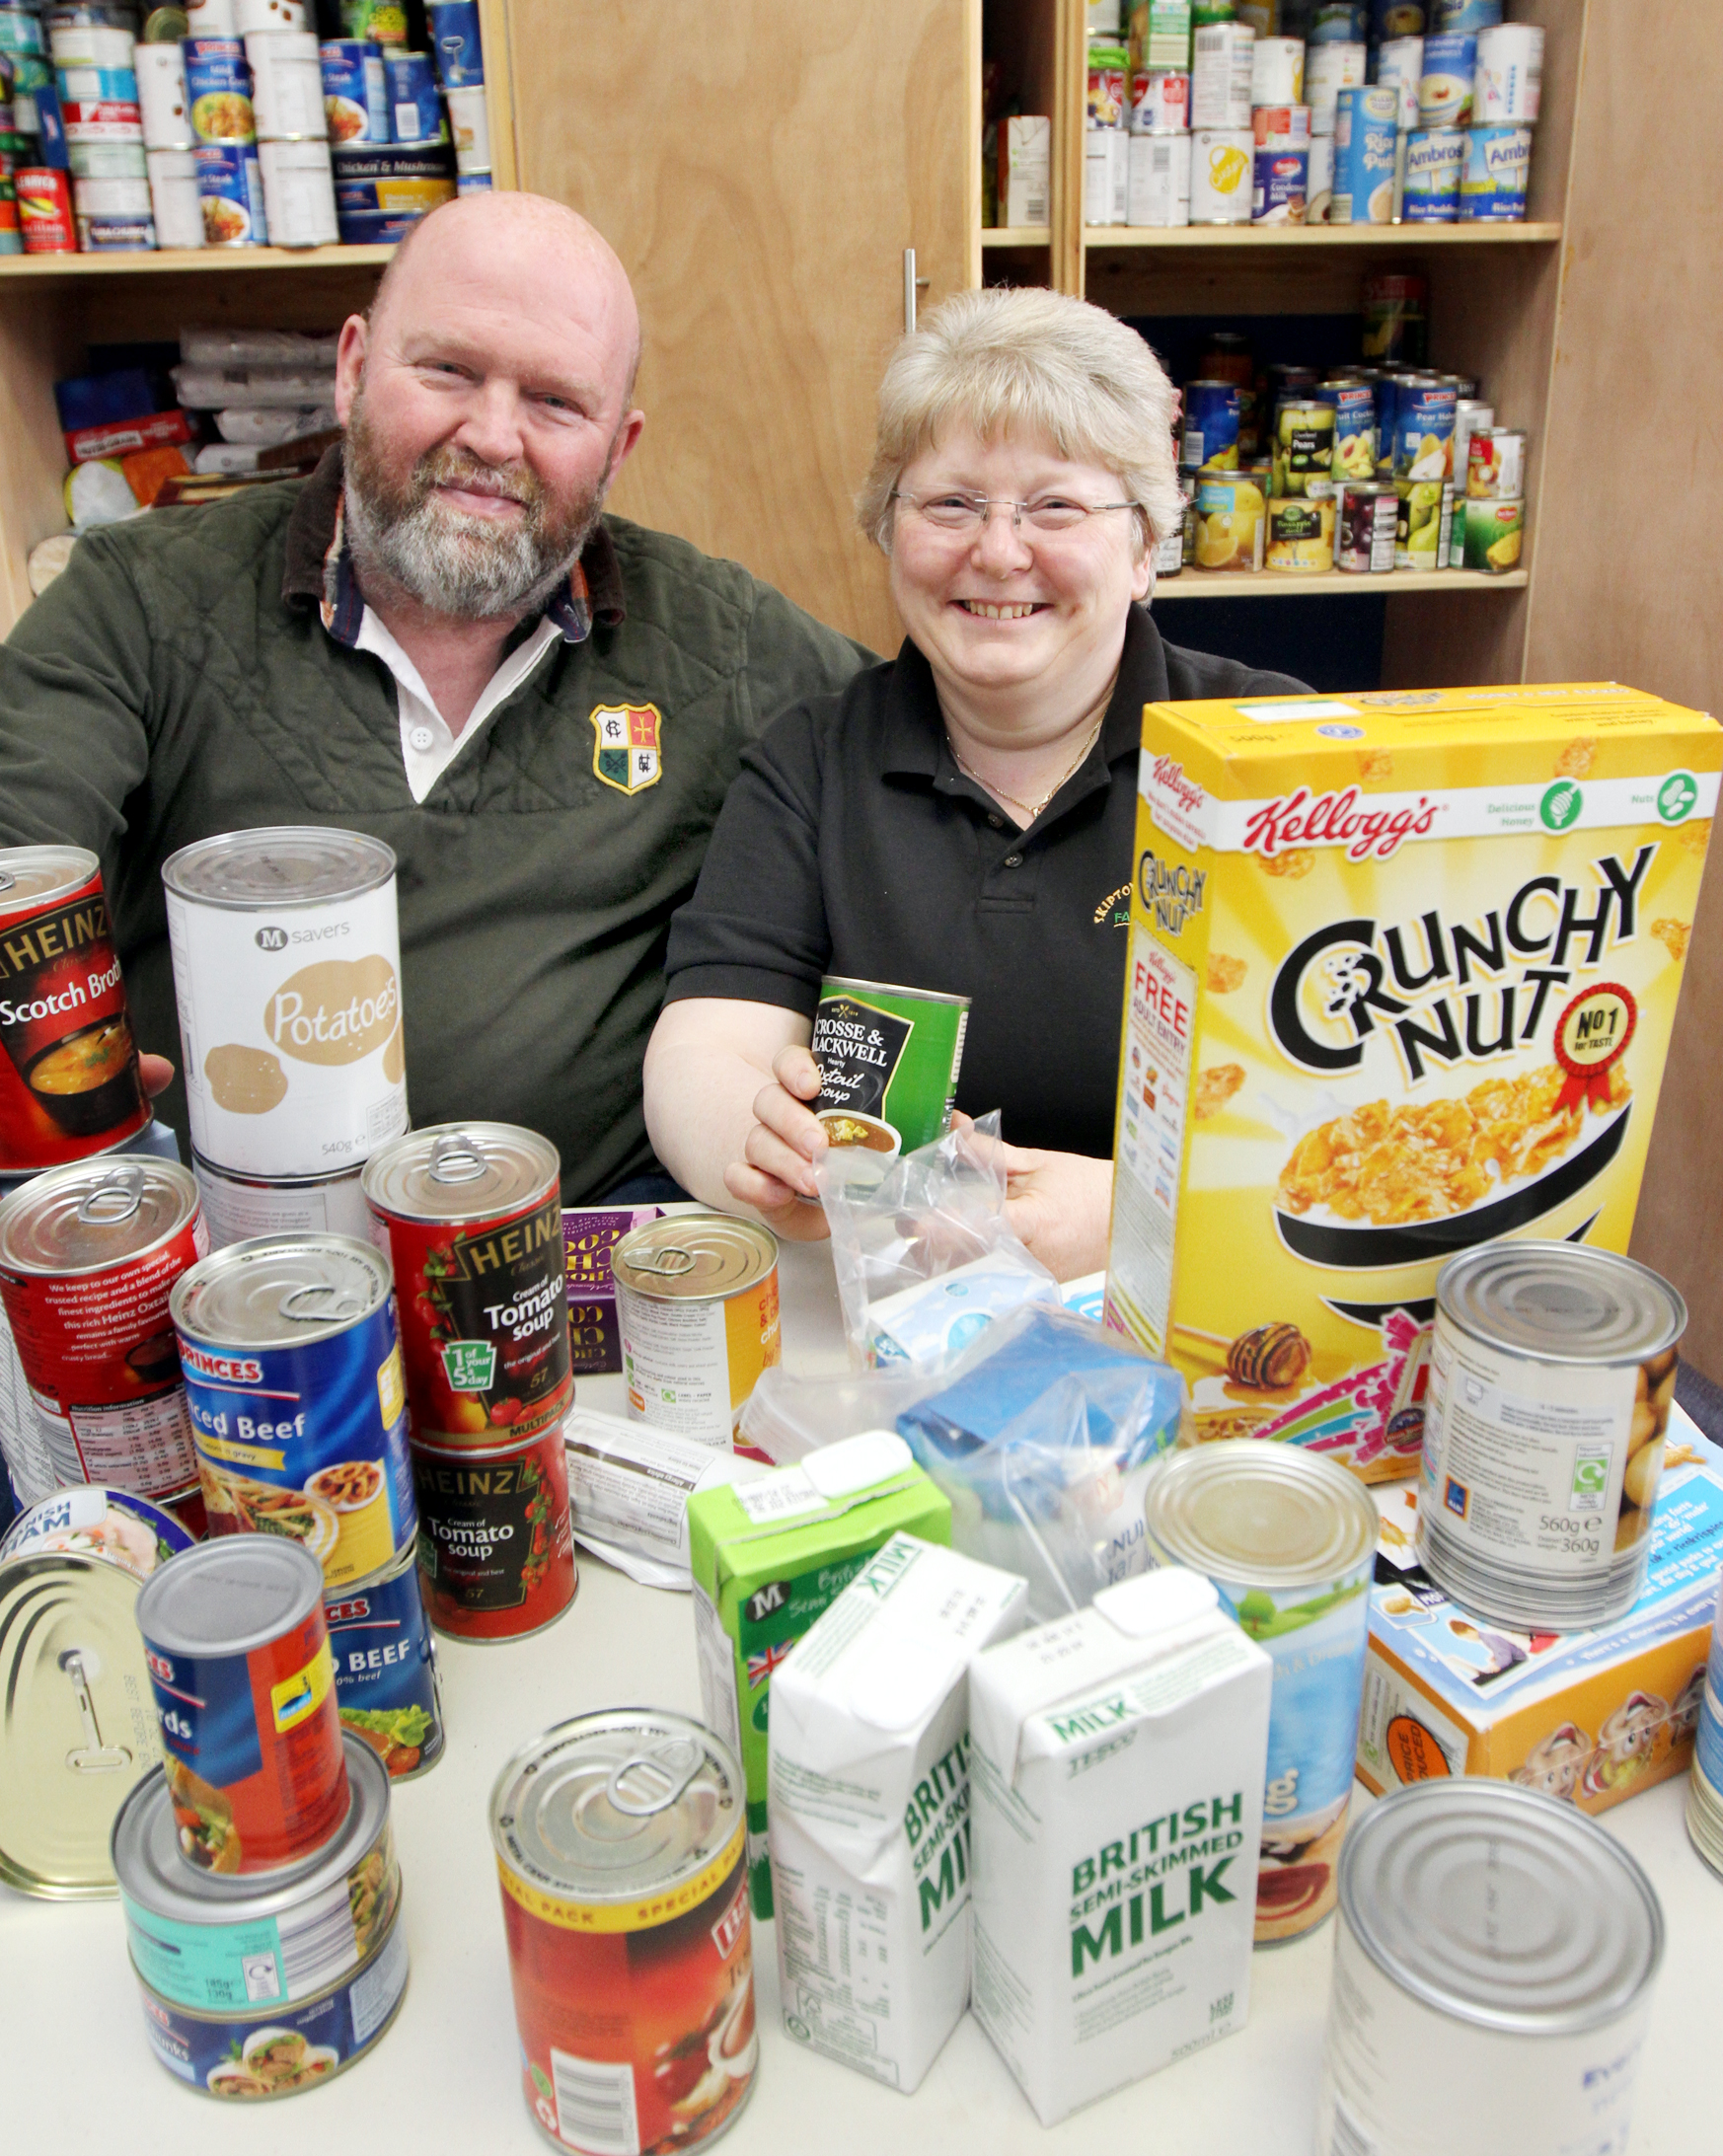 FOOD FOR THOUGHT: Minister in training Michael Dewhirst and   co-ordinator Ella Smith celebrate Skipton Food Bank, based at Skipton Baptist Church, gaining £19,000 over the next two years